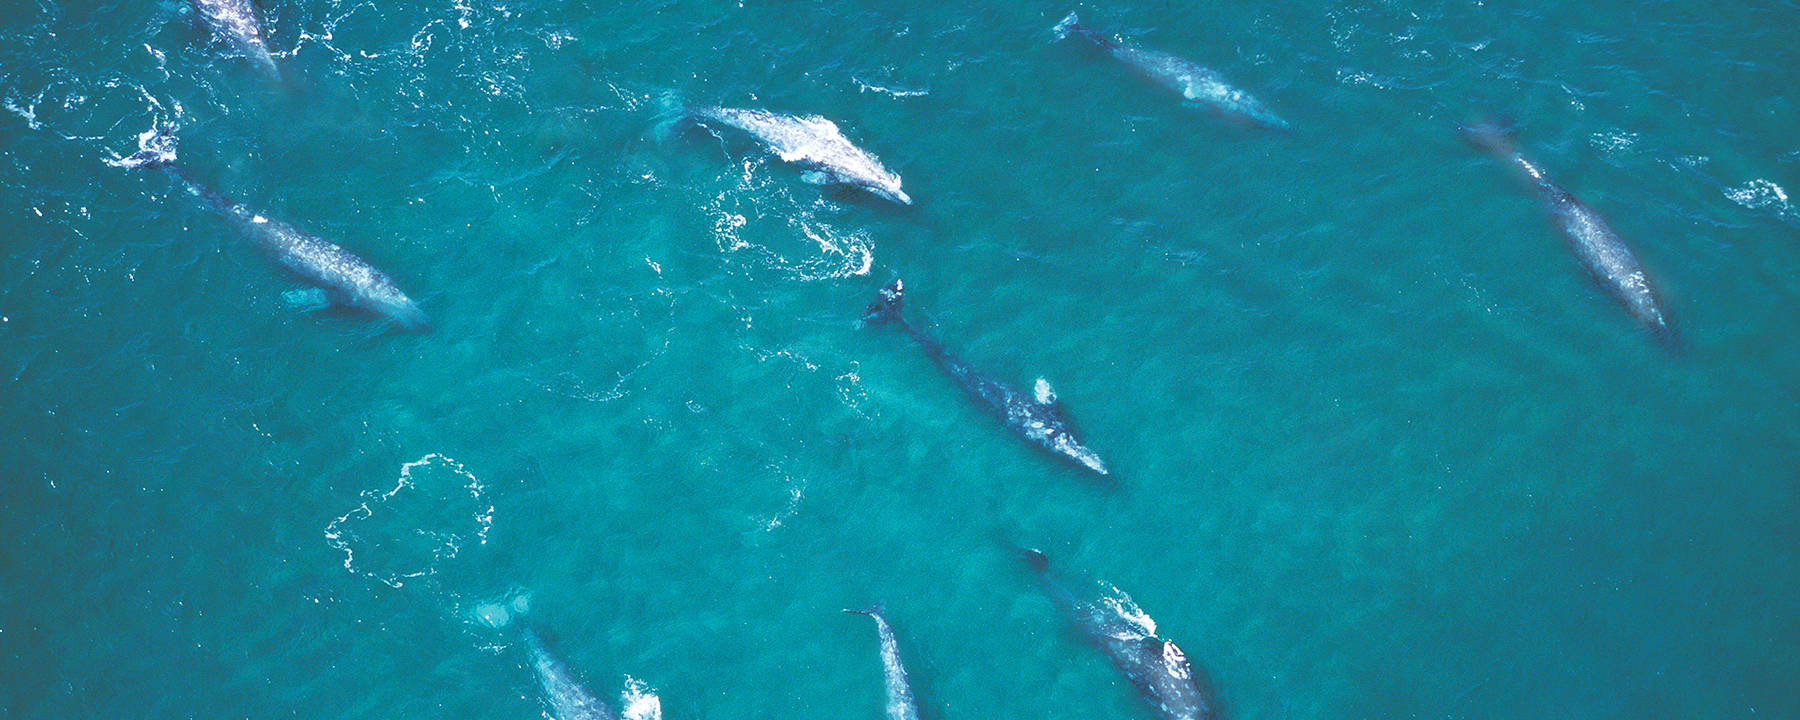 Clues Point to Climate Change as a Culprit in Gray Whale Deaths